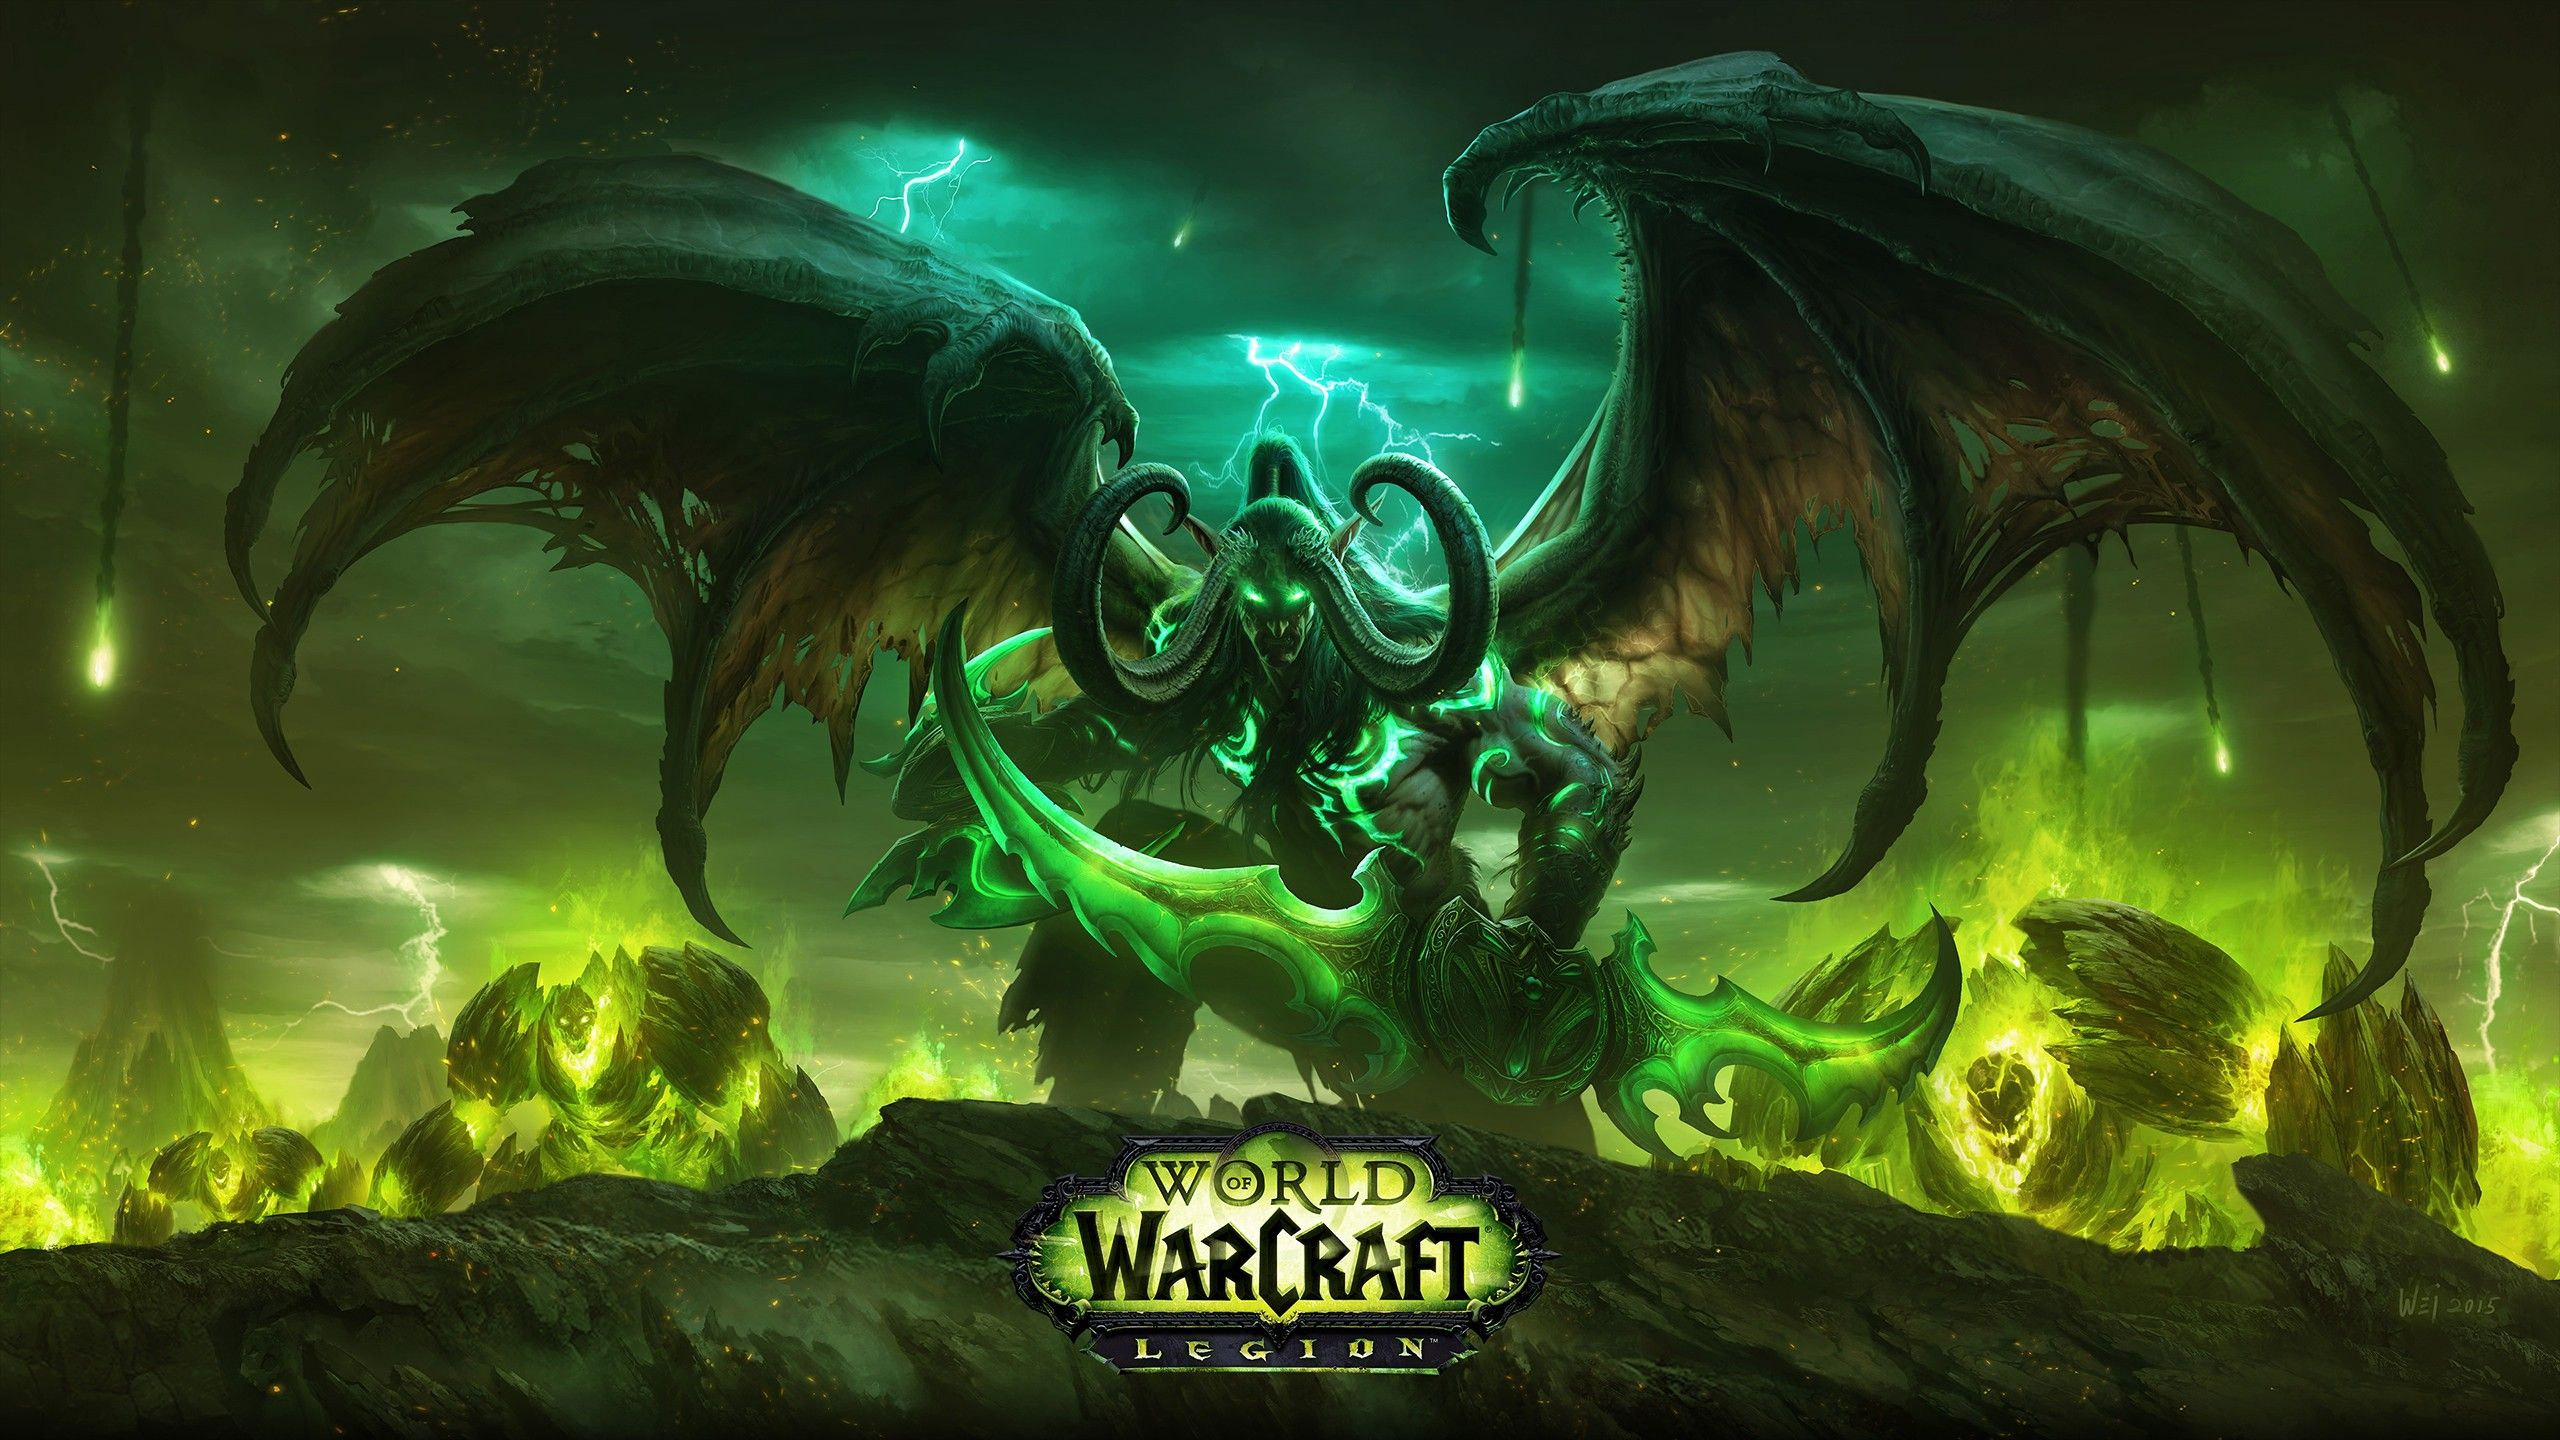 World Of Warcraft Legion Wallpaper No 245386 World Of Warcraft Wallpaper World Of Warcraft Legion World Of Warcraft Game